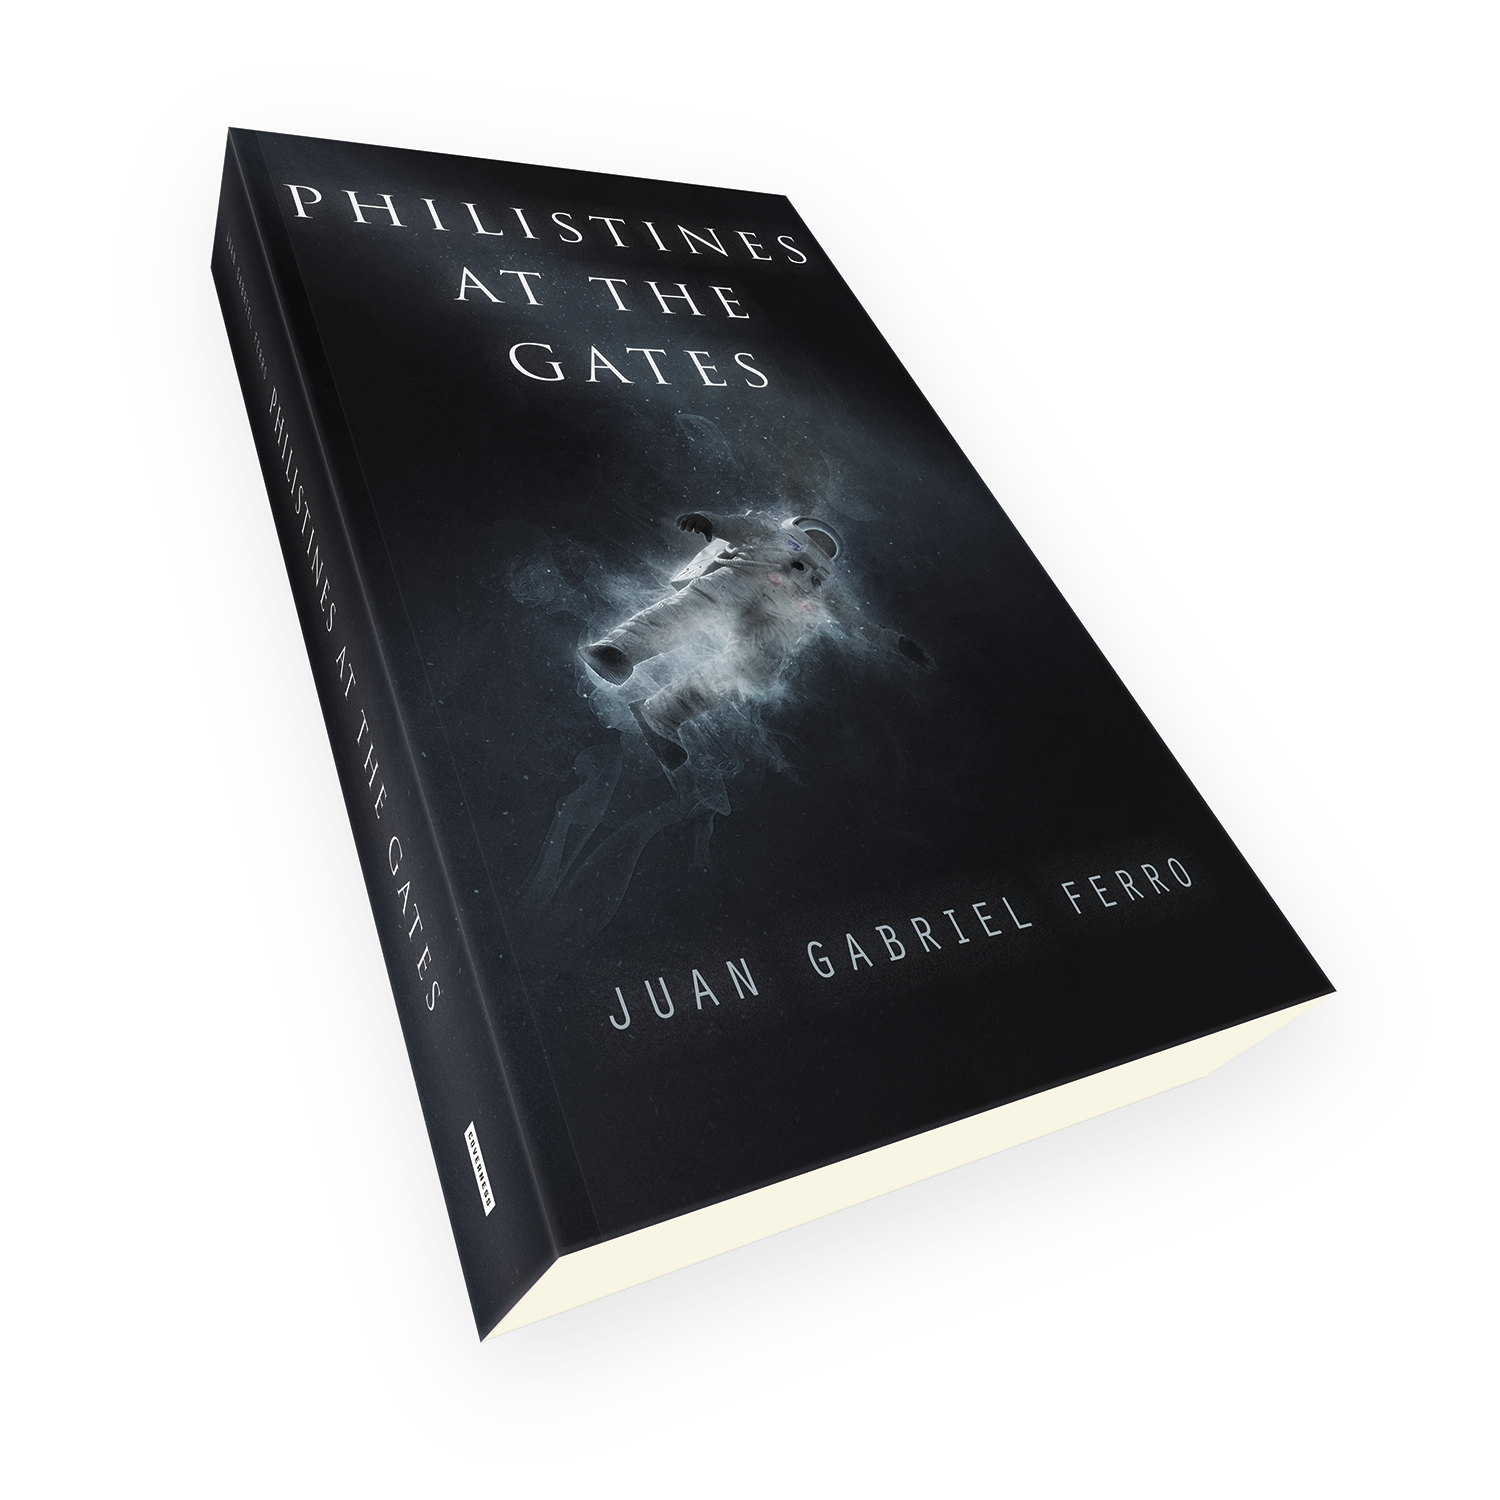 'Philistines At The Gates' is a bespoke cover design for a modern scifi thriller novel. The book cover was designed by Mark Thomas, of coverness.com. To find out more about my book design services, please visit www.coverness.com.